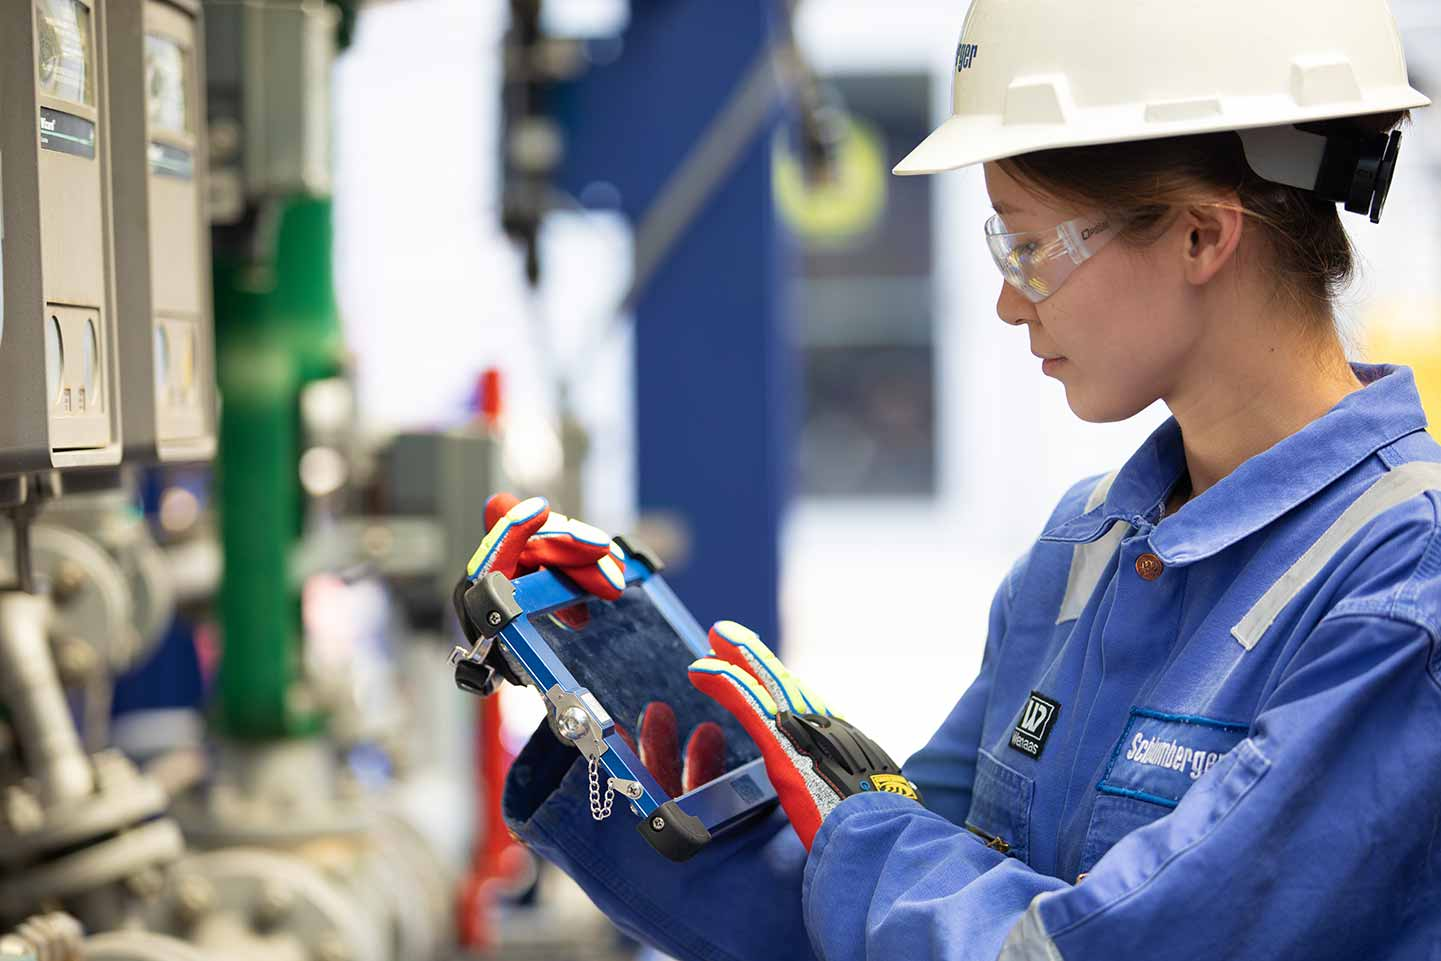 Schlumberger Worker Inspecting Equipment Wearing HSE Gear